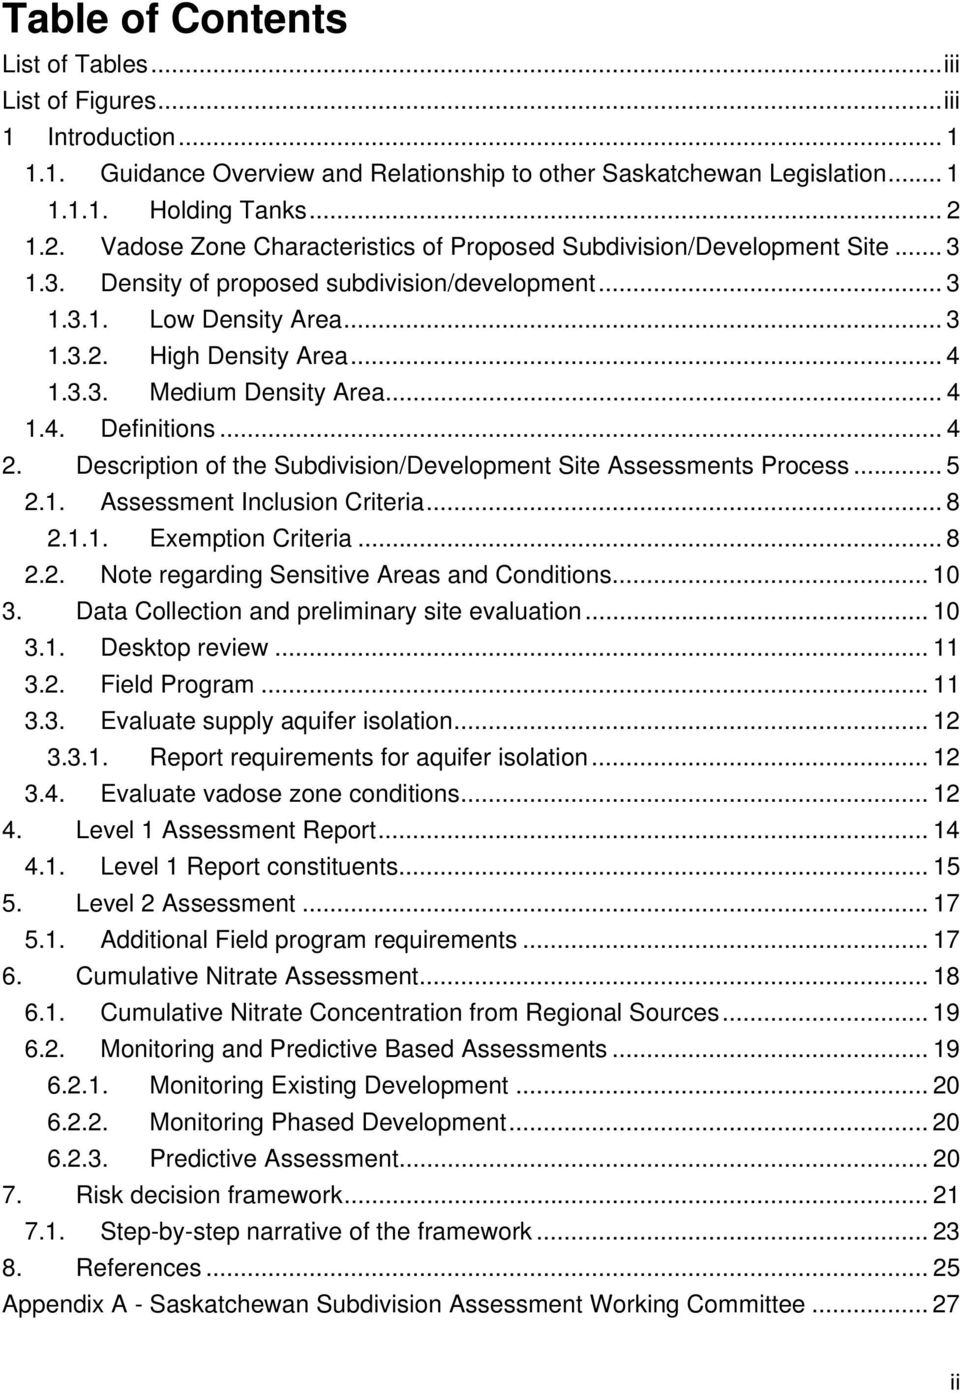 .. 4 1.4. Definitions... 4 2. Description of the Subdivision/Development Site Assessments Process... 5 2.1. Assessment Inclusion Criteria... 8 2.1.1. Exemption Criteria... 8 2.2. Note regarding Sensitive Areas and Conditions.